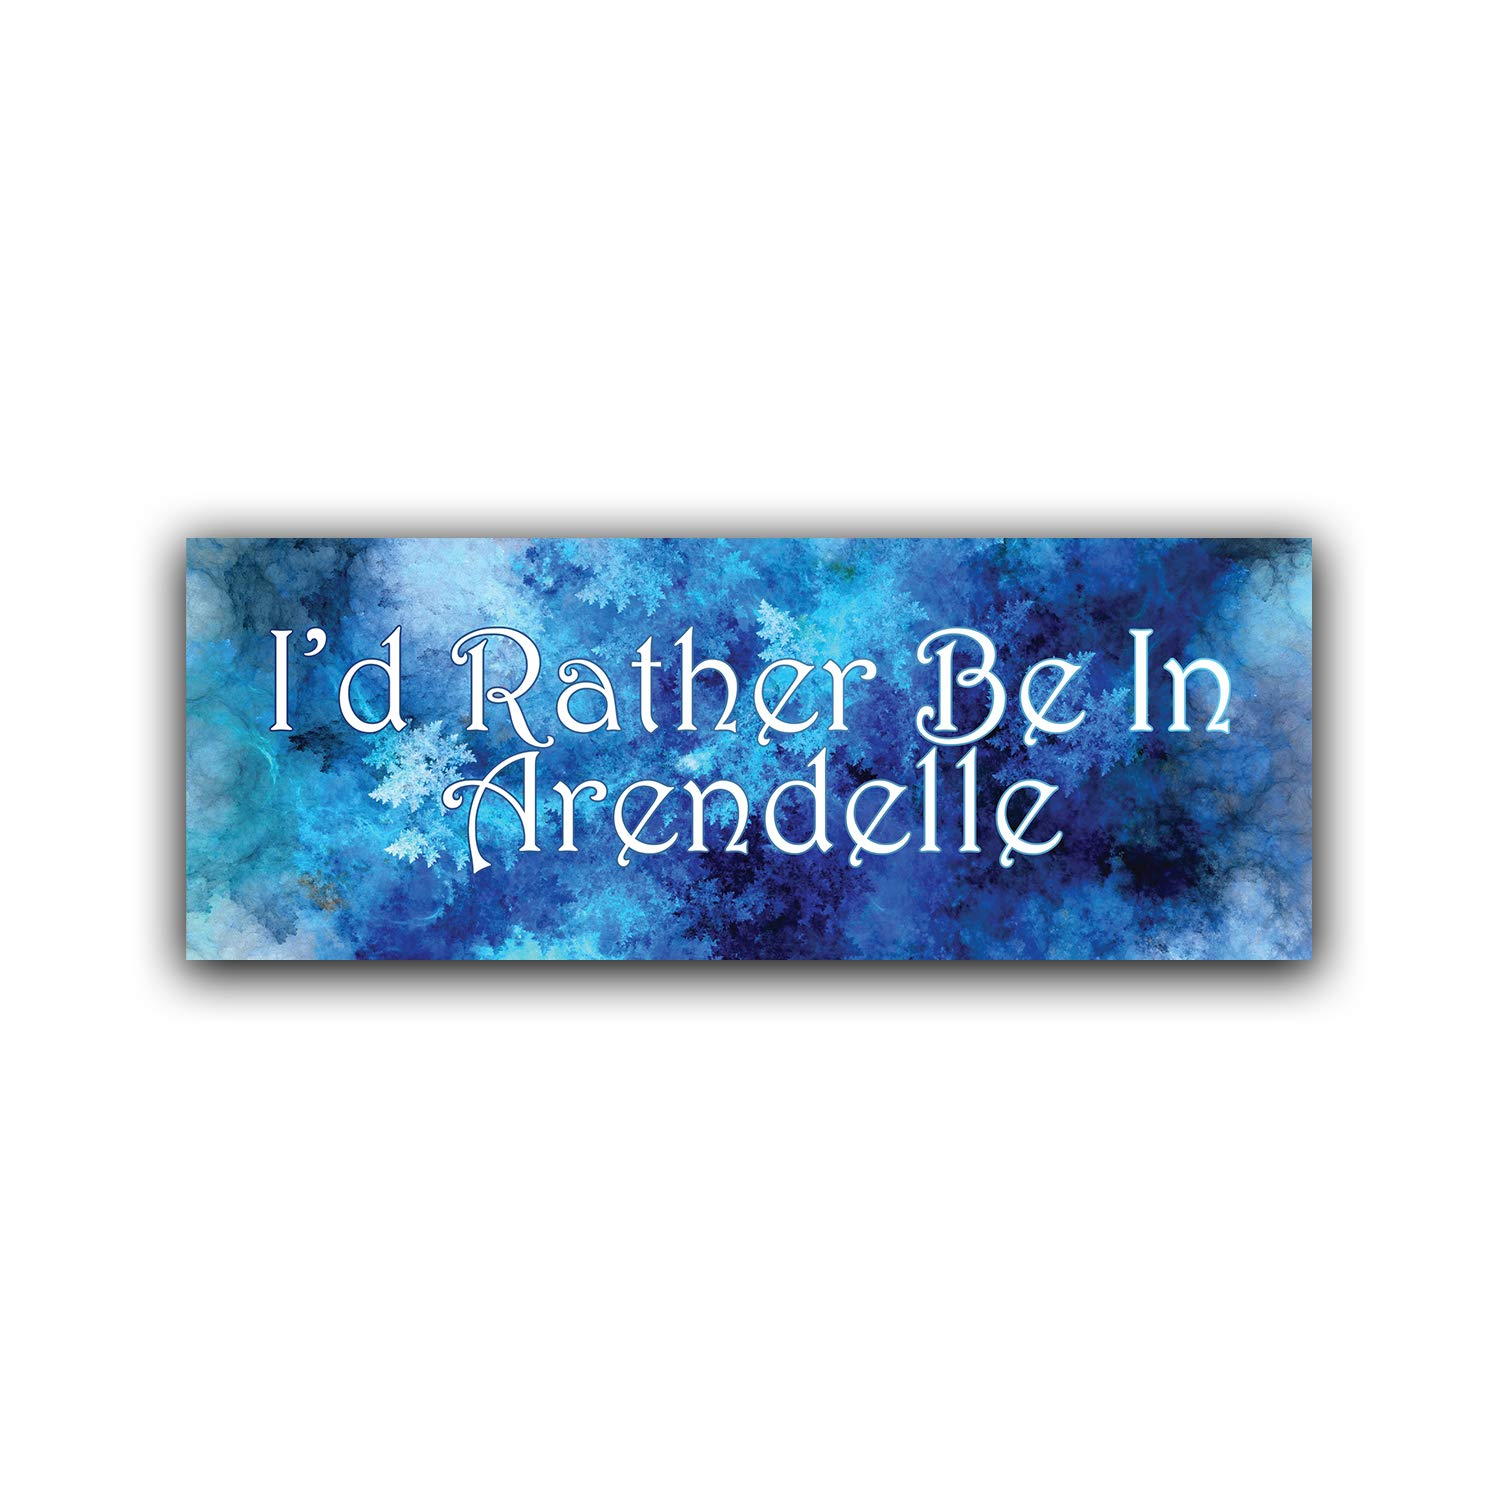 Car Truck Van SUV Window Wall Cup Laptop One 8.25 Inch Decal More Shiz Id Rather Be in Arendelle Vinyl Decal Sticker MKS0783